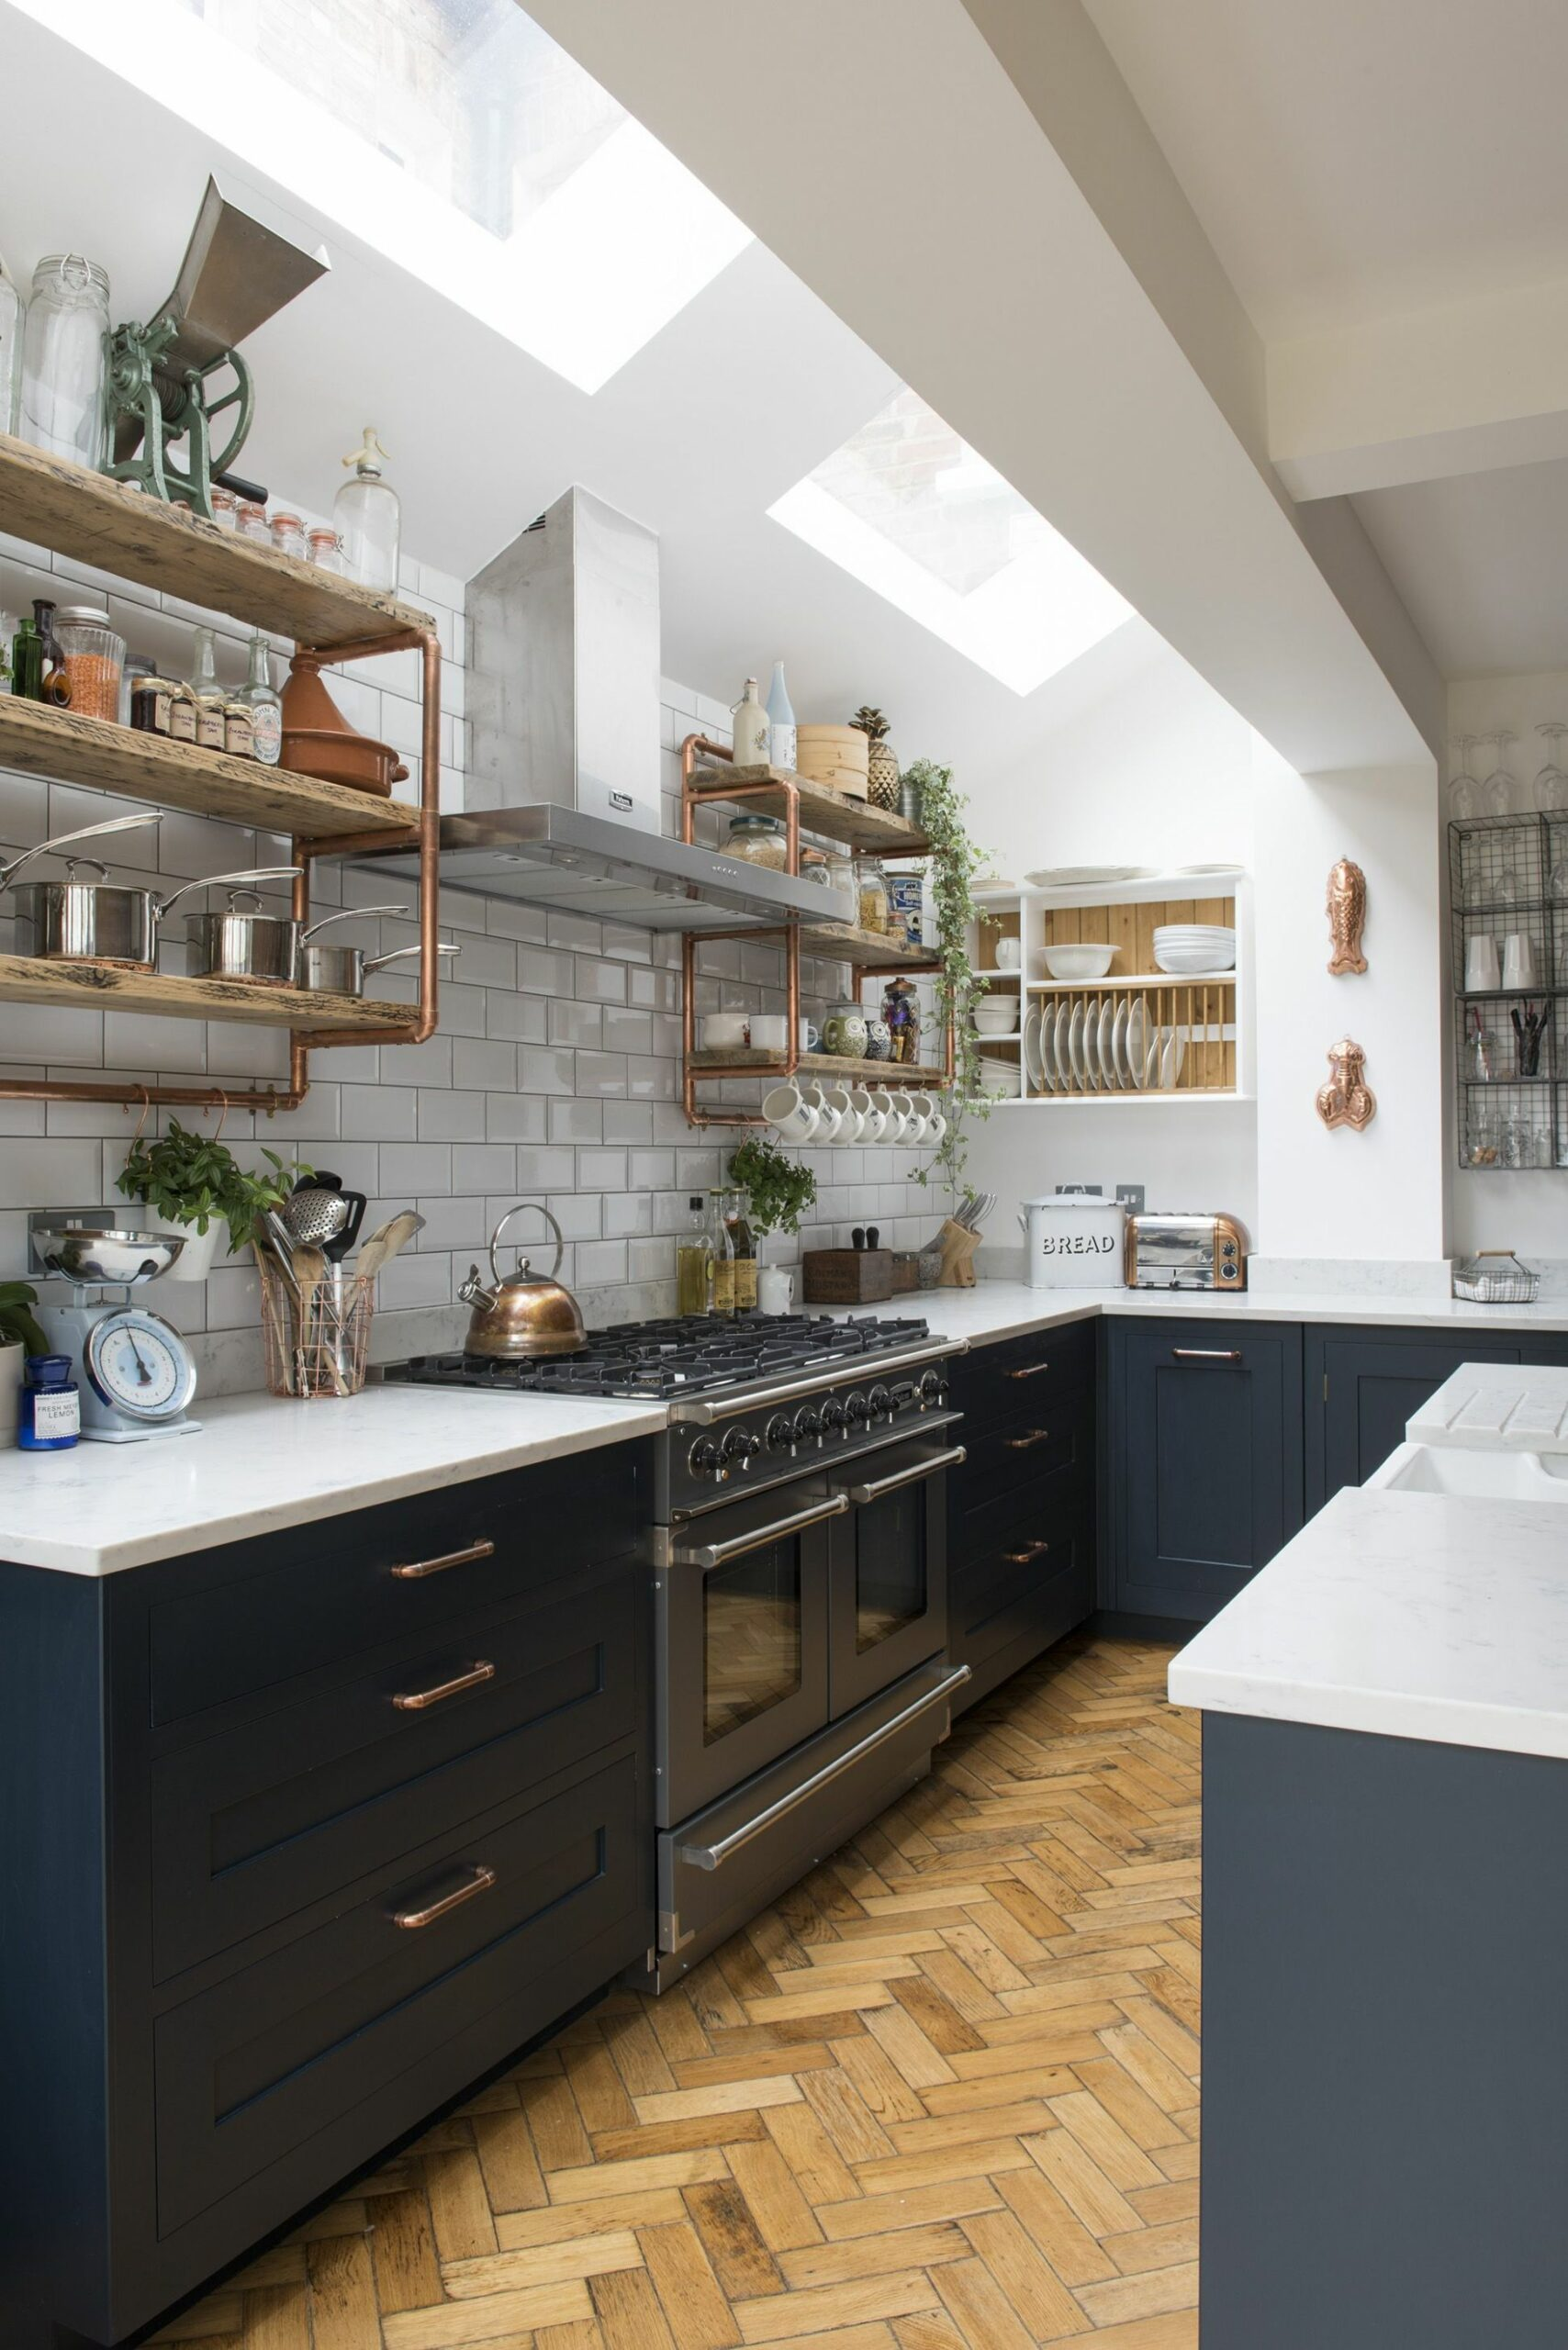 Real home: an open plan kitchen extension with industrial touches ...